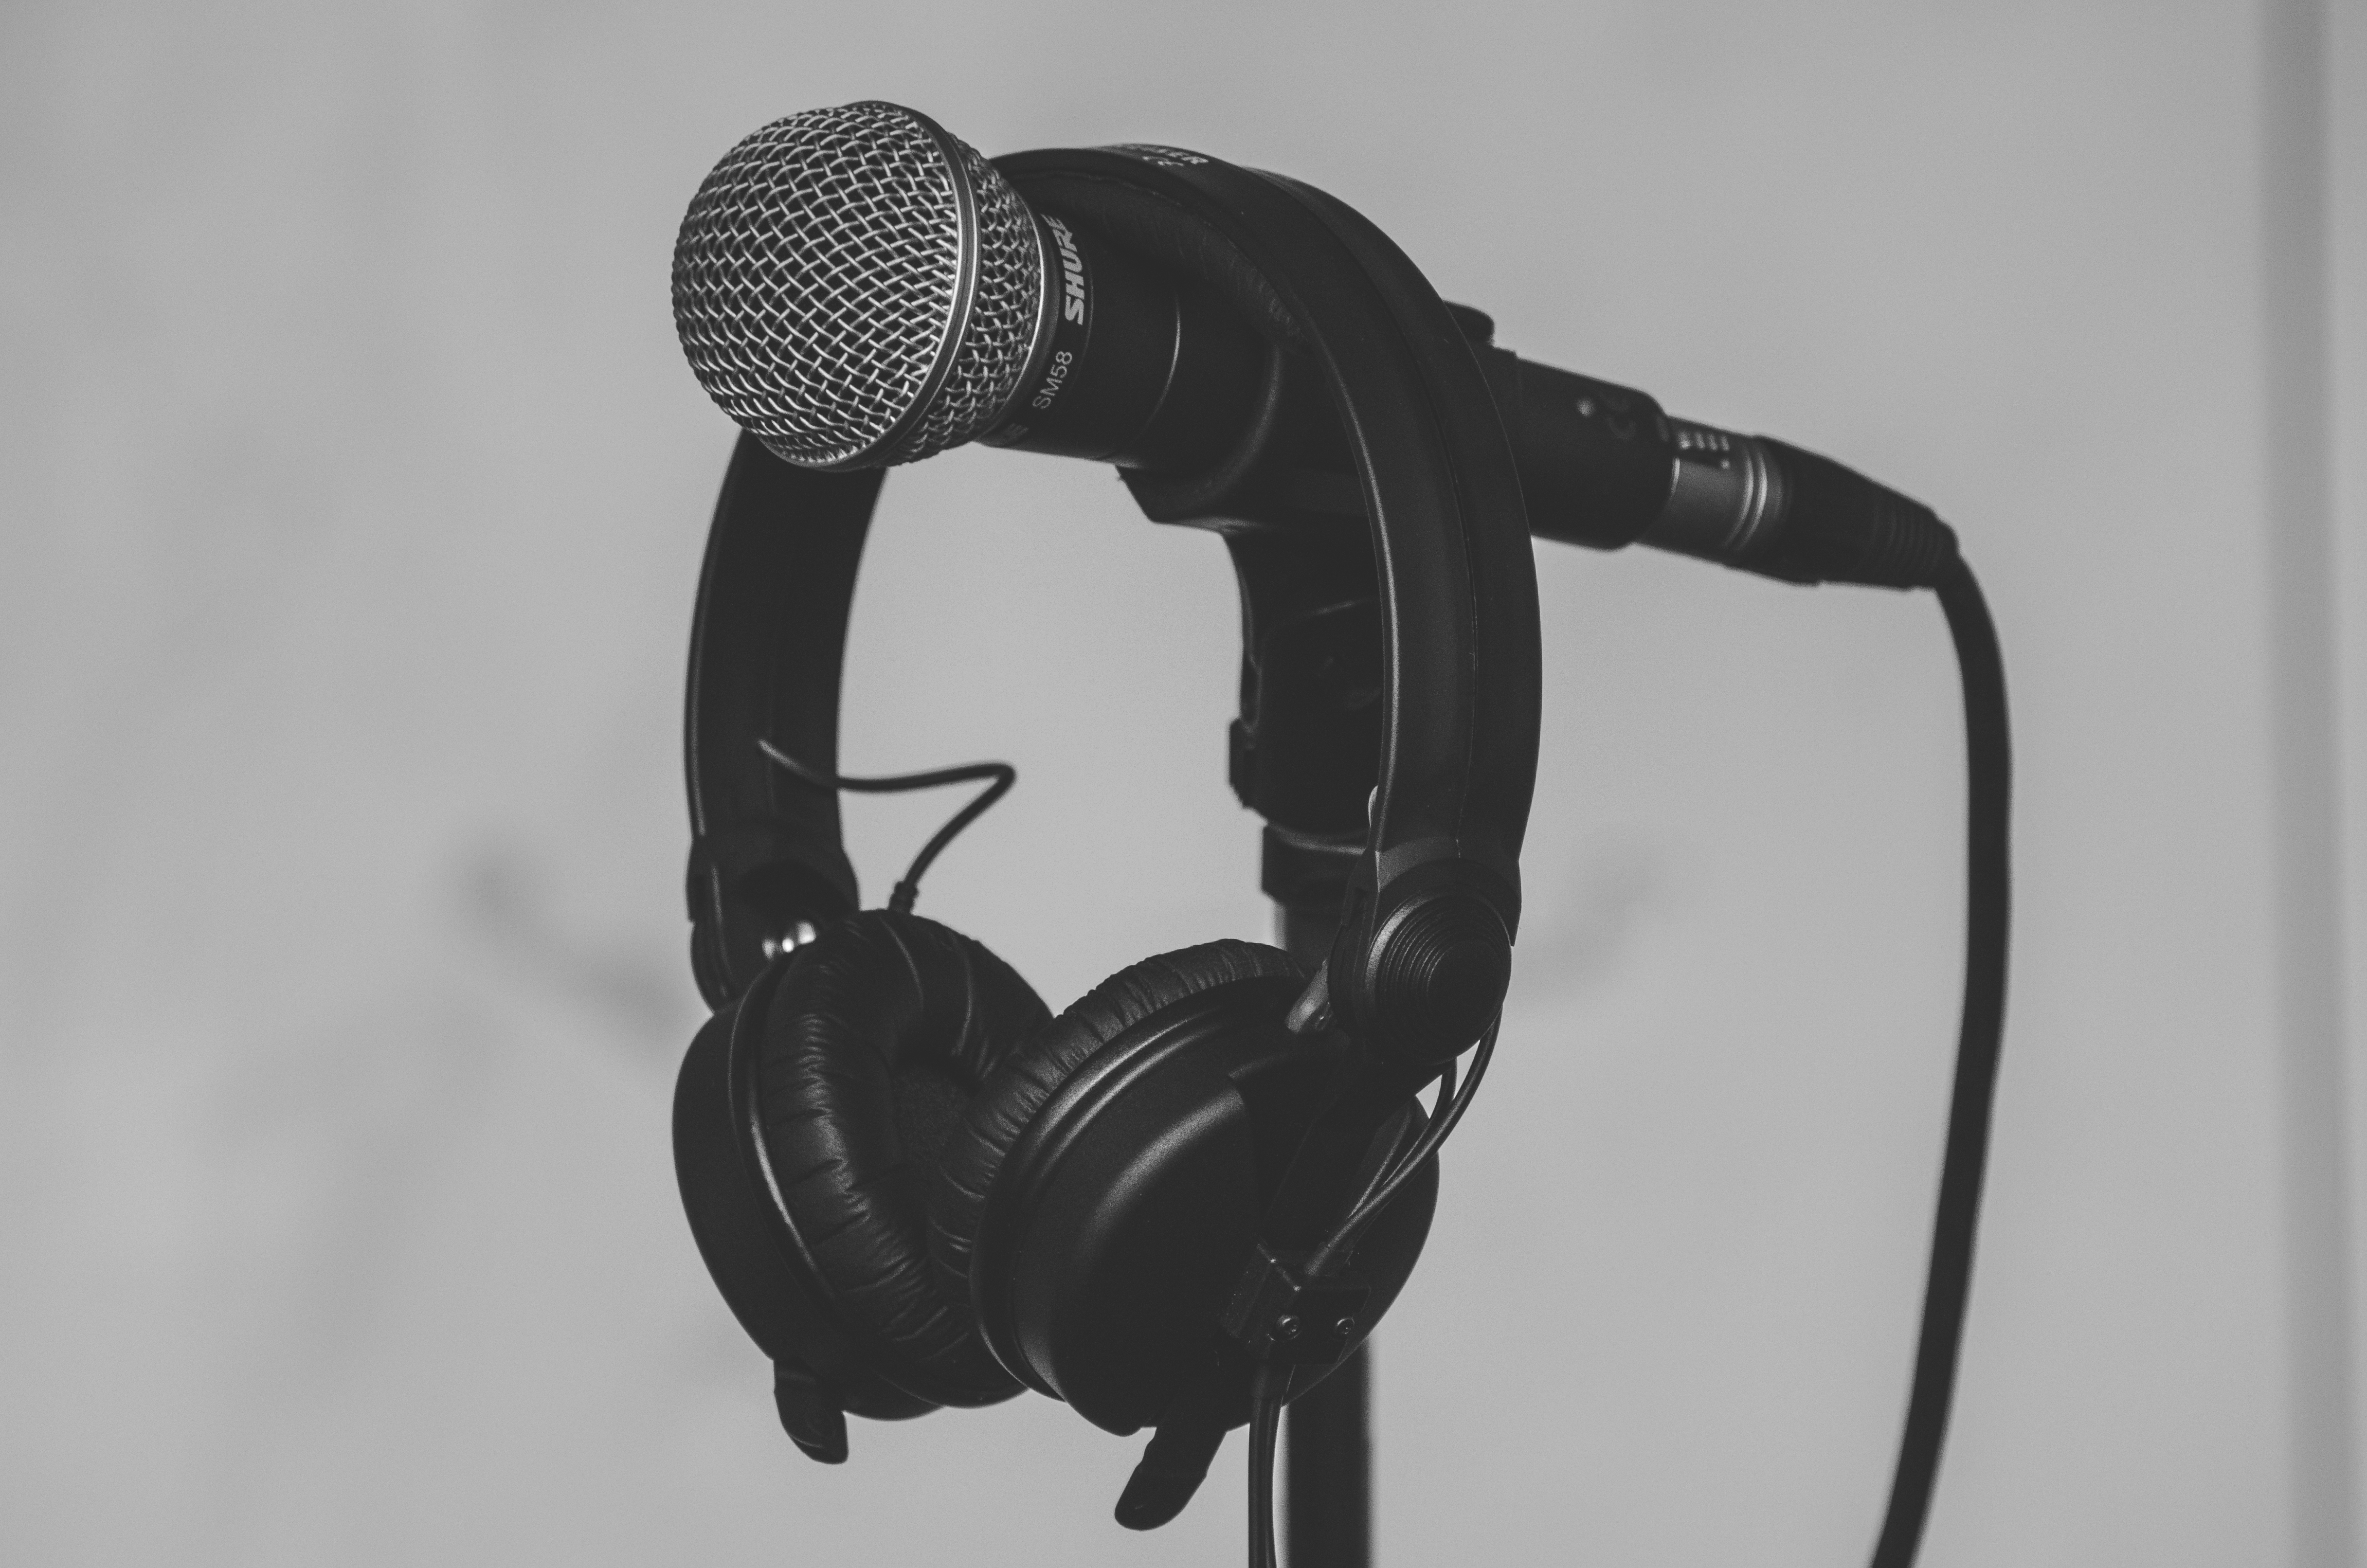 Black Headset Hanging on Black and Gray Microphone